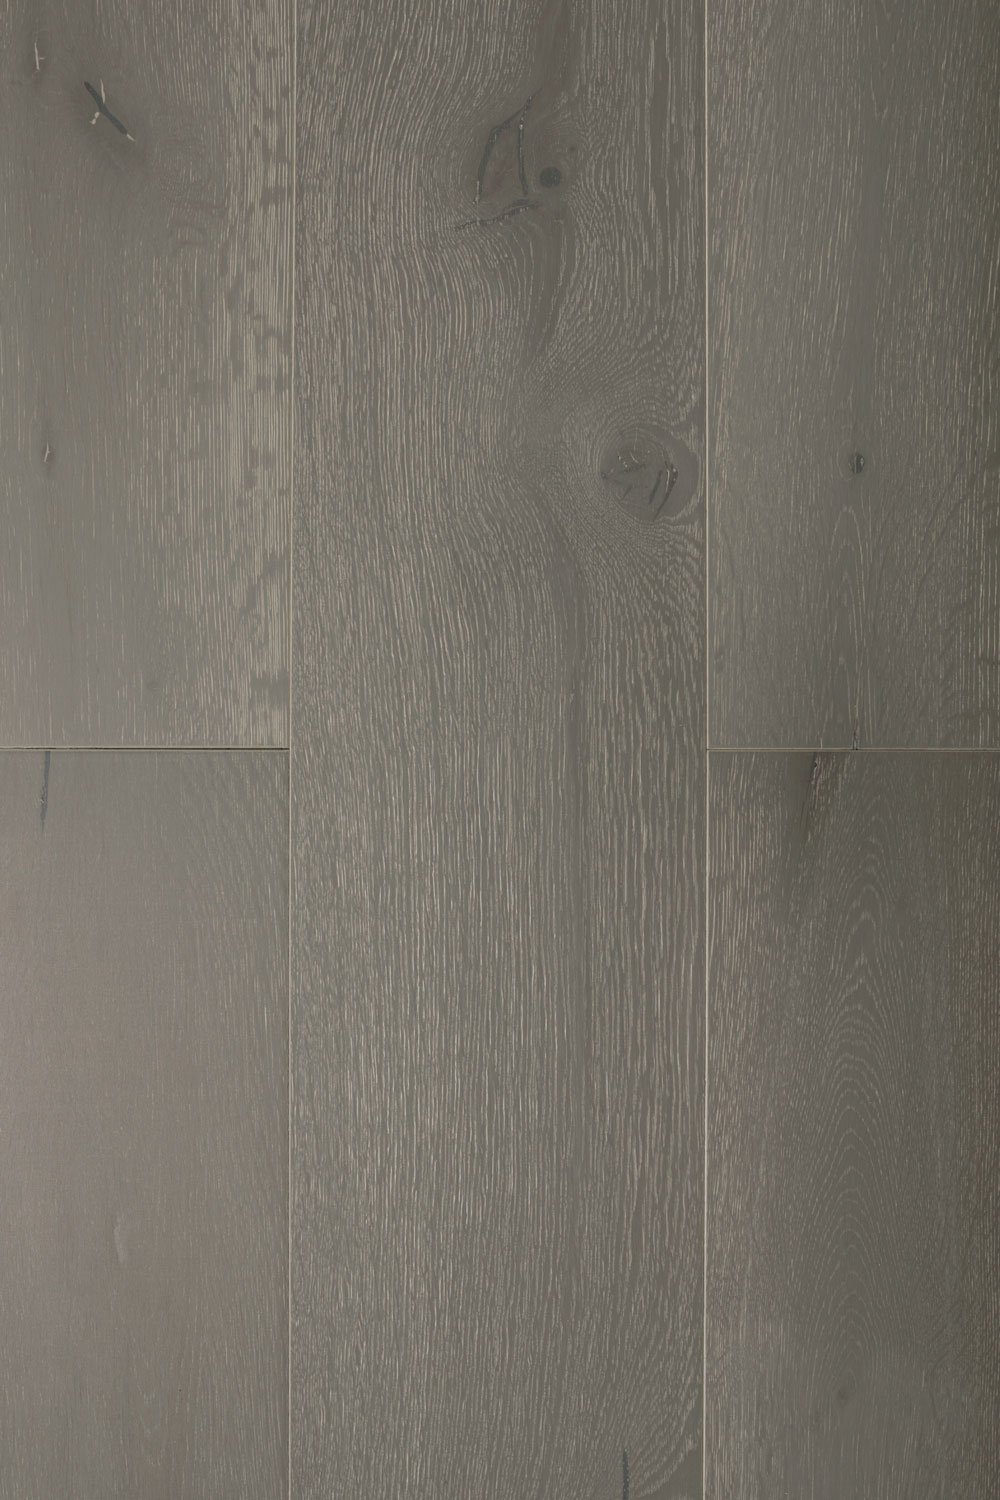 UV Lacquer Siena 5/8 in. Thick x 7-1/2 in. Wide x Varying Length Floating Engineered European Oak Hardwood Flooring (22.72 sq. ft. / box) - 810001960407